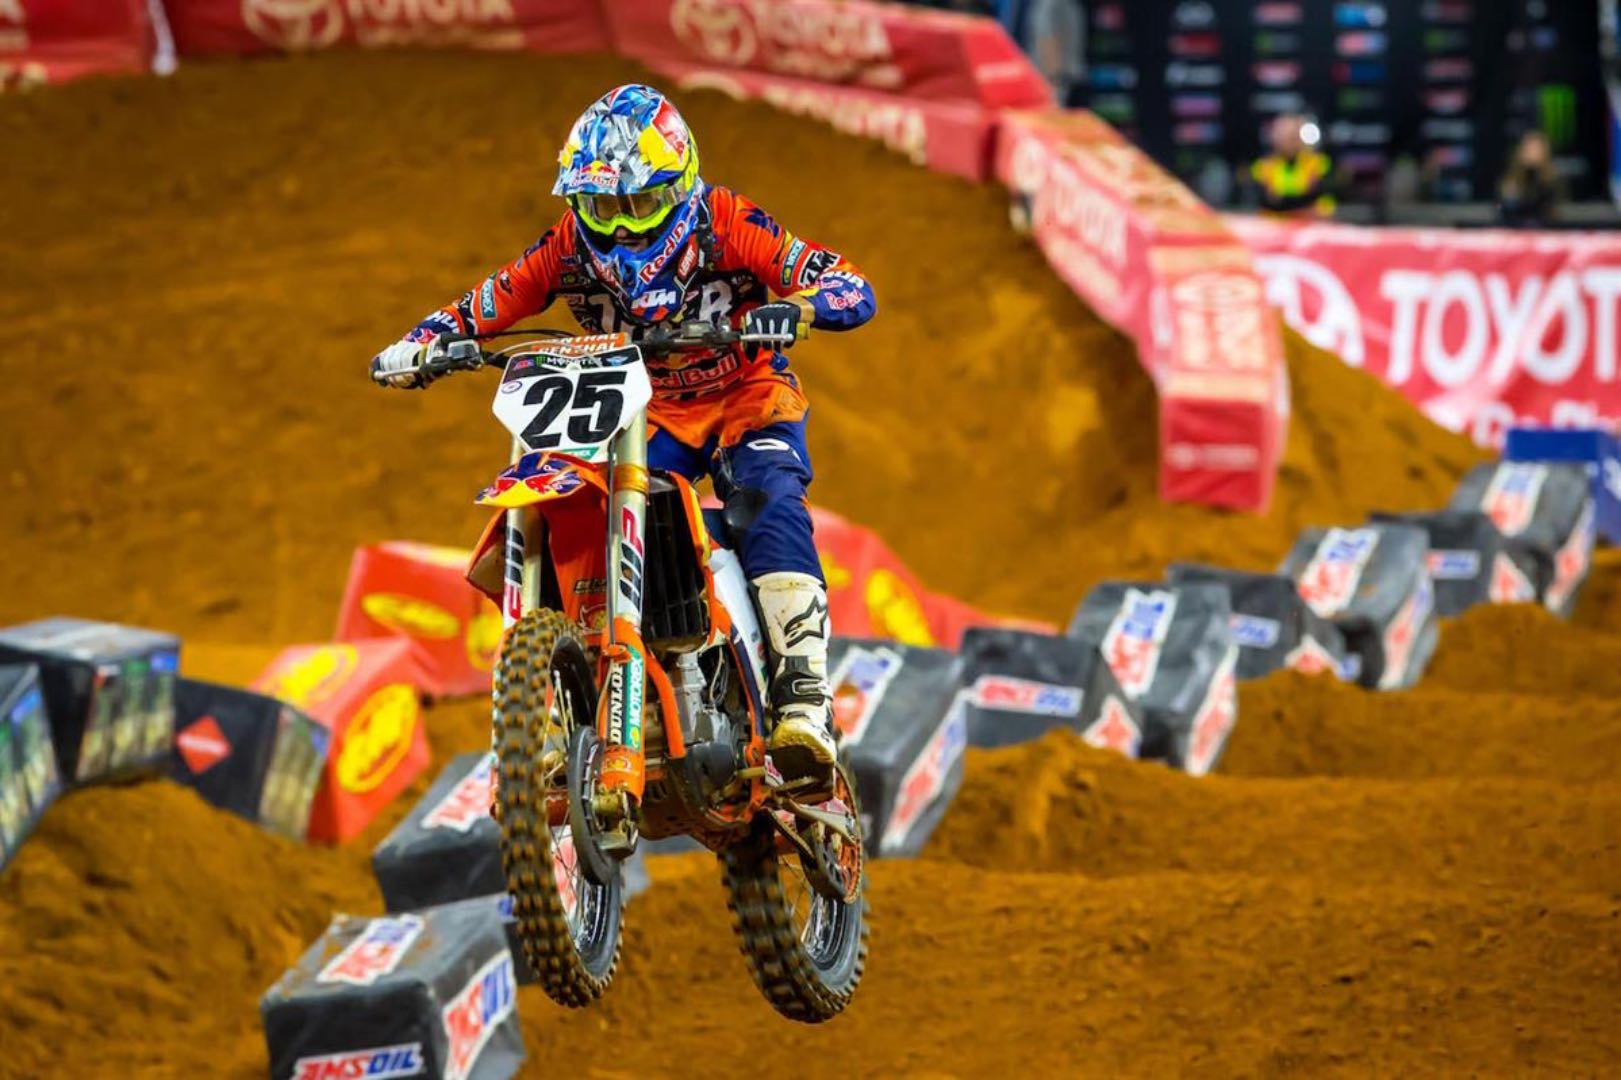 2018 Arlington Supercross Results KTm's Marvin Musquin